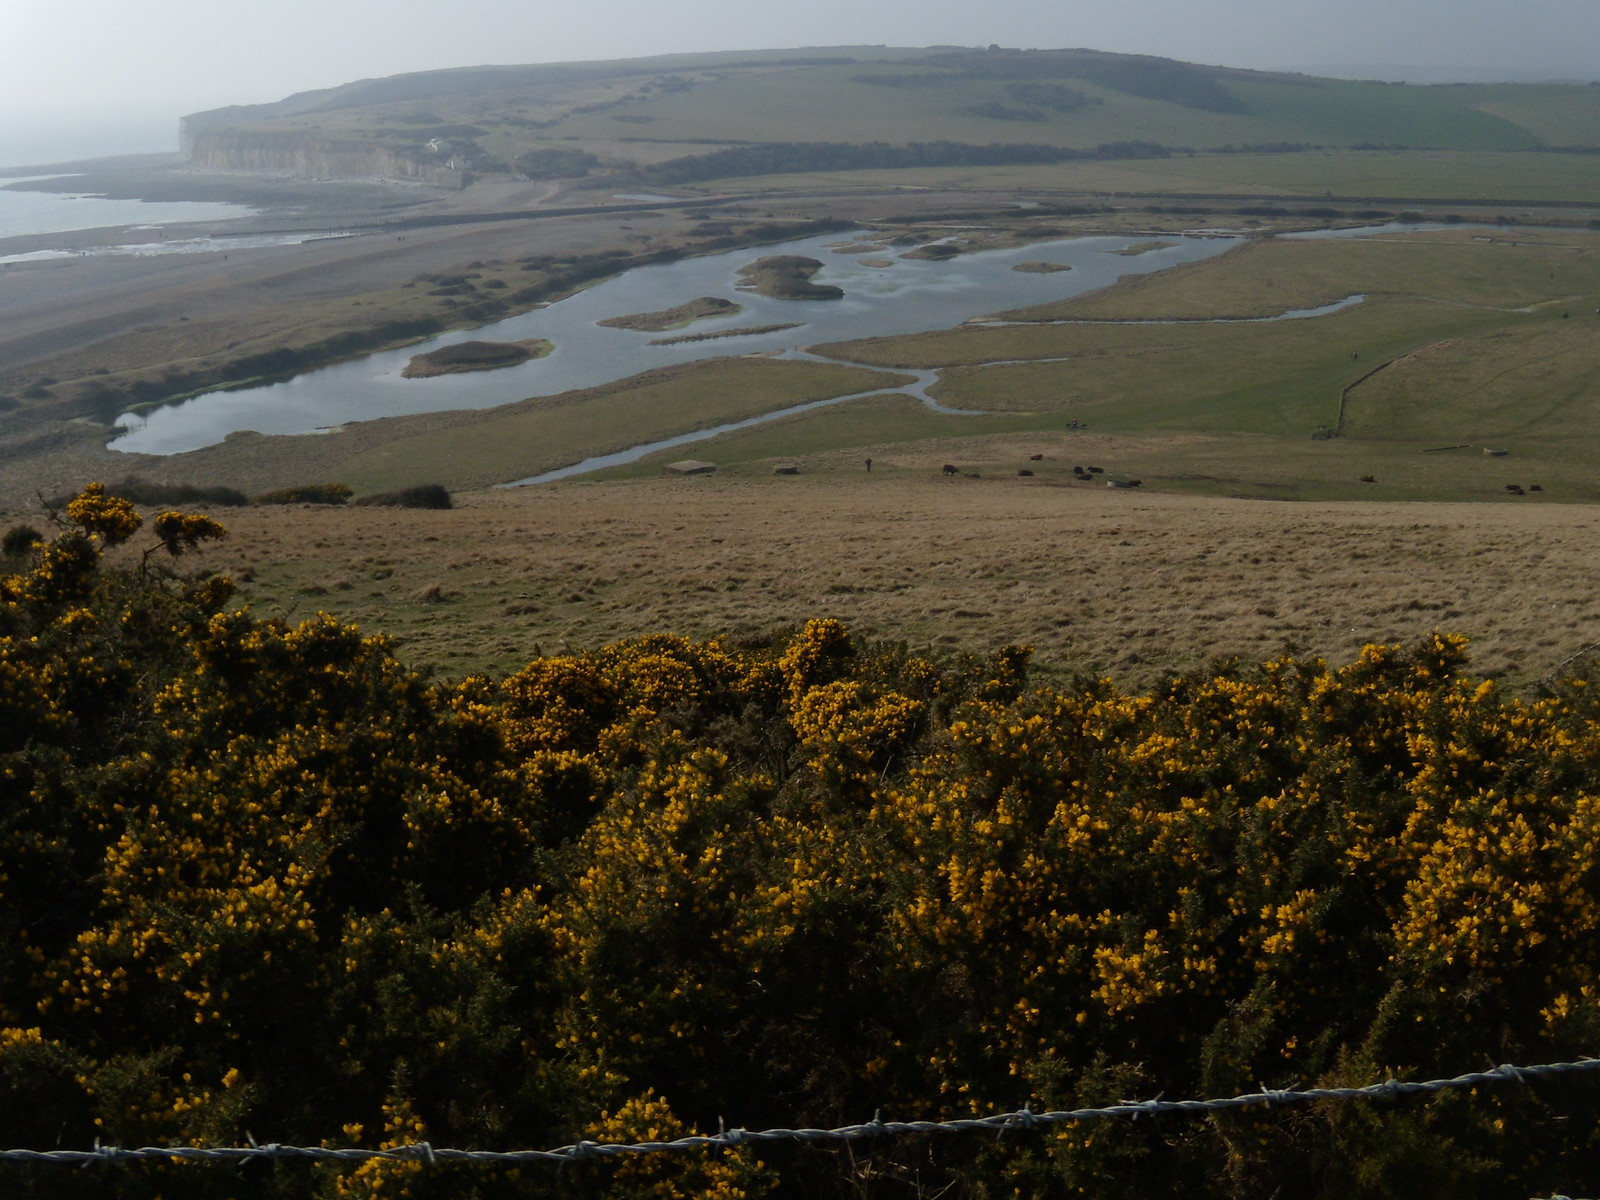 Cuckmere Haven Seaford to Eastbourne